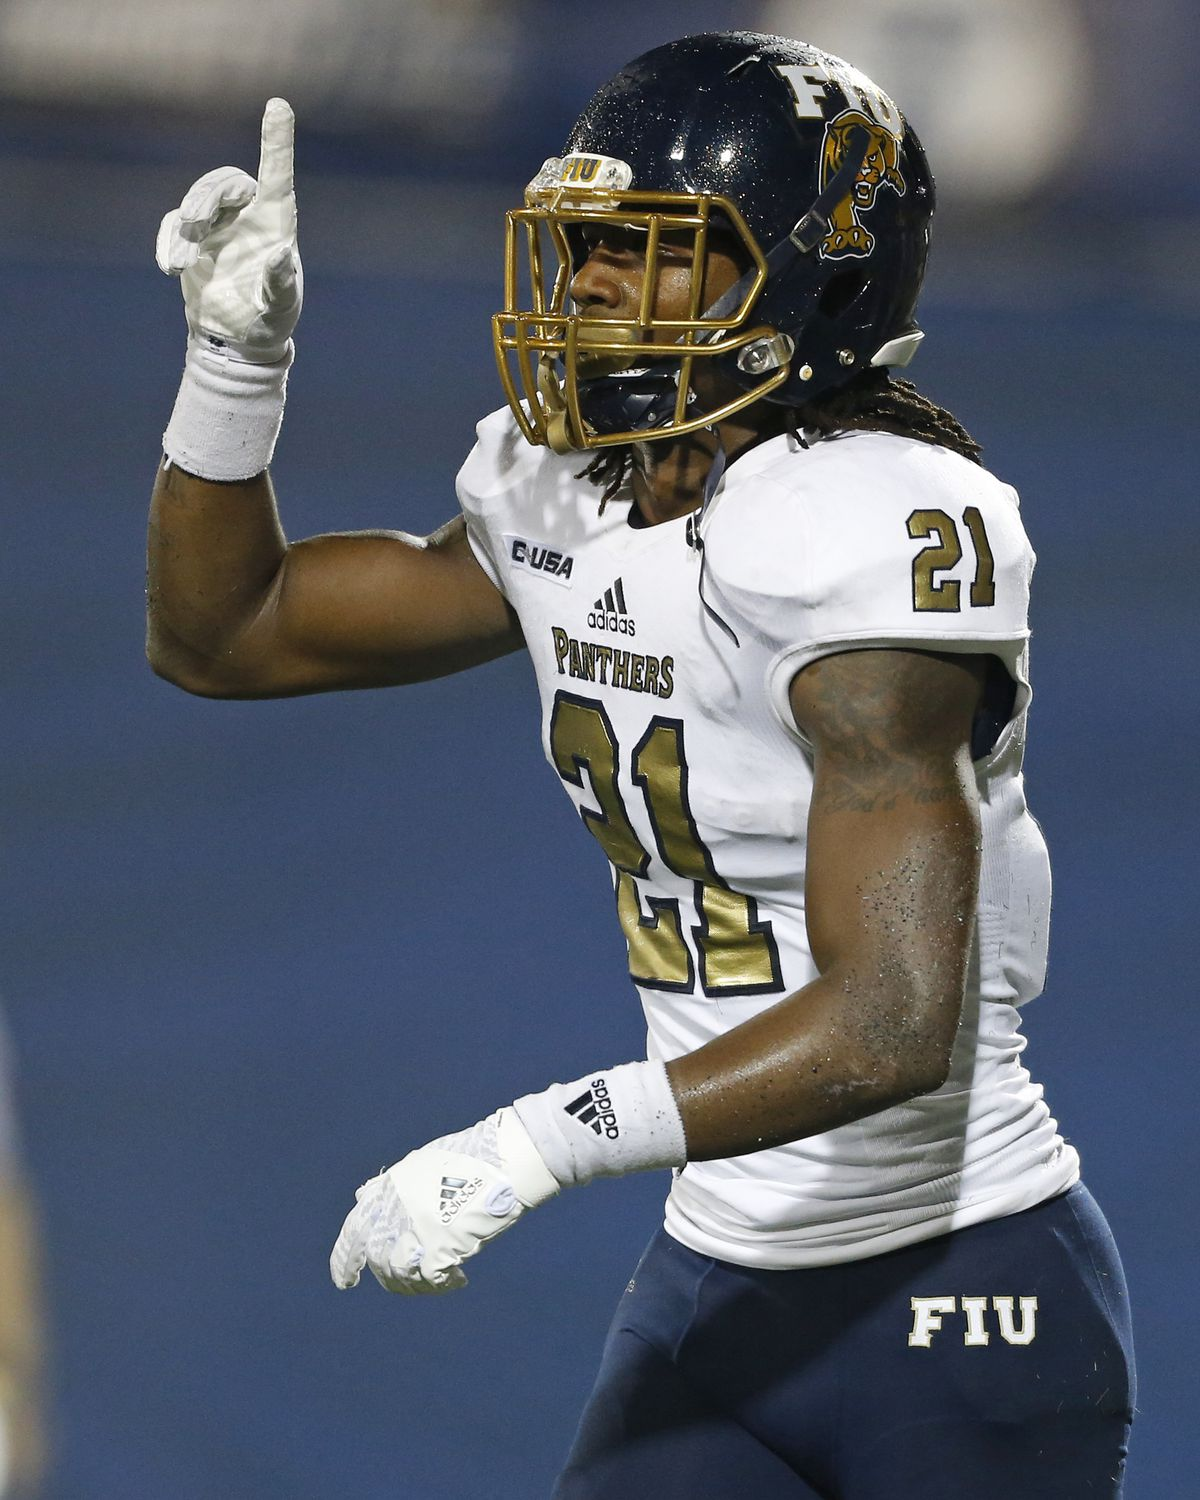 check out 68a6c 2d515 FIU vs FAU: Game Preview & Prediction - Underdog Dynasty